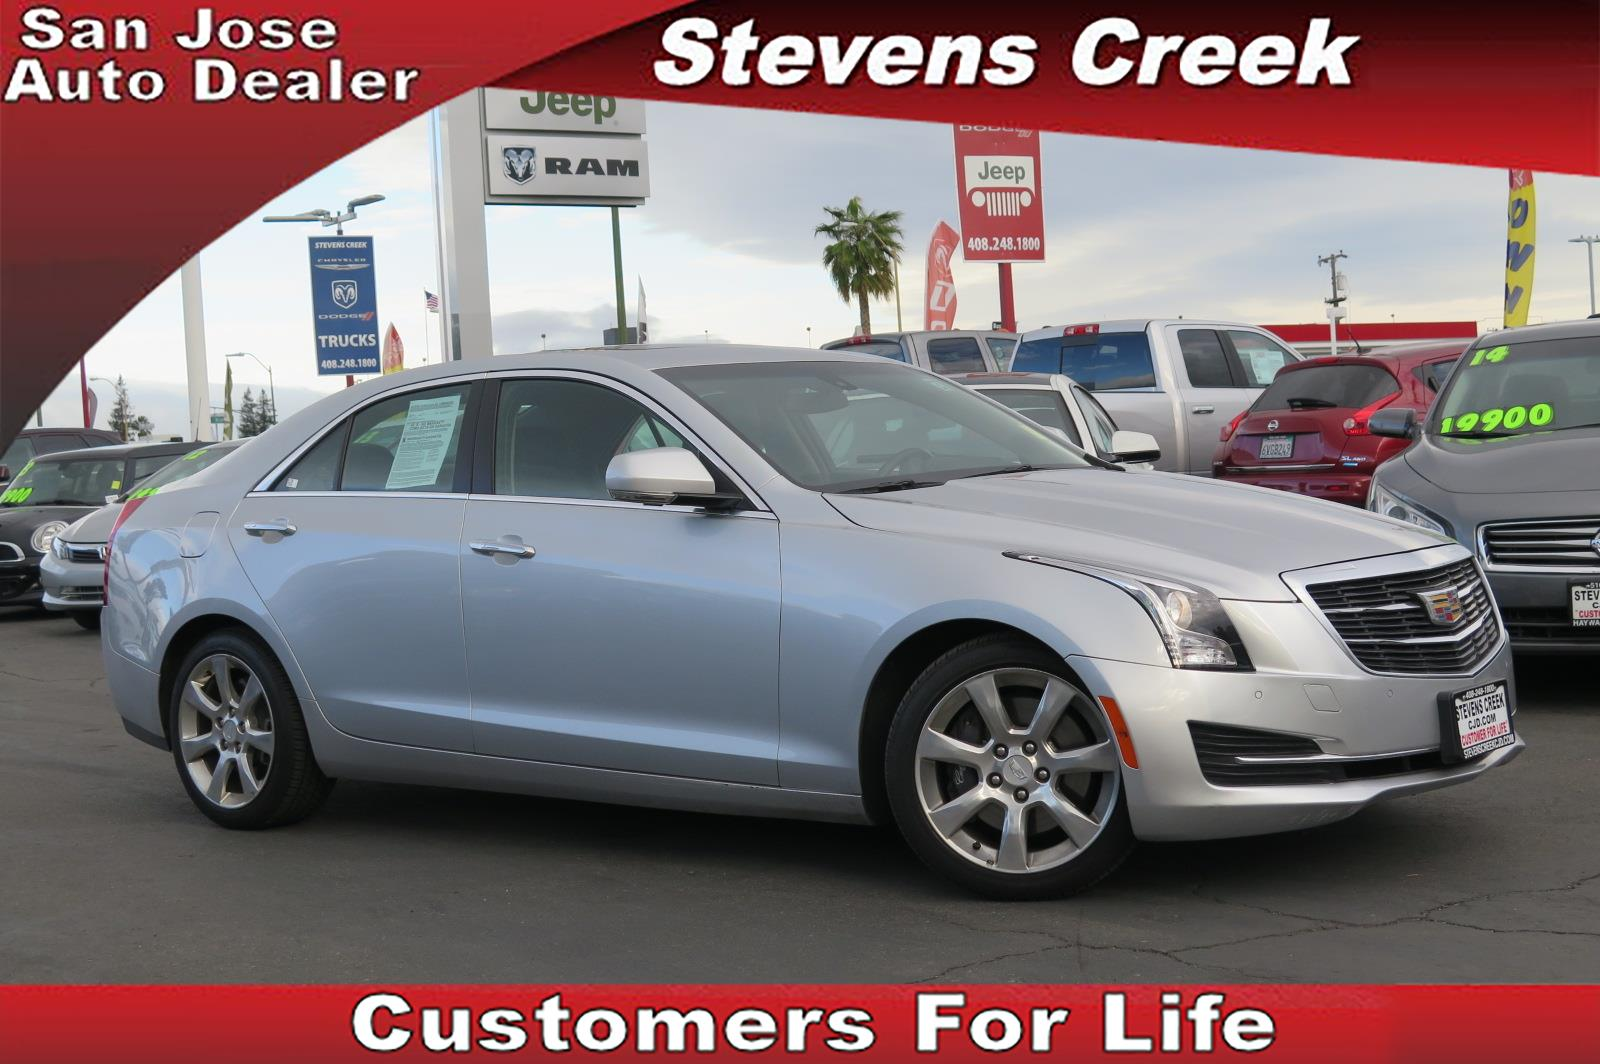 2015 CADILLAC ATS ATS silver 2l inline 4 automatic emergency service  power windows  vehicle